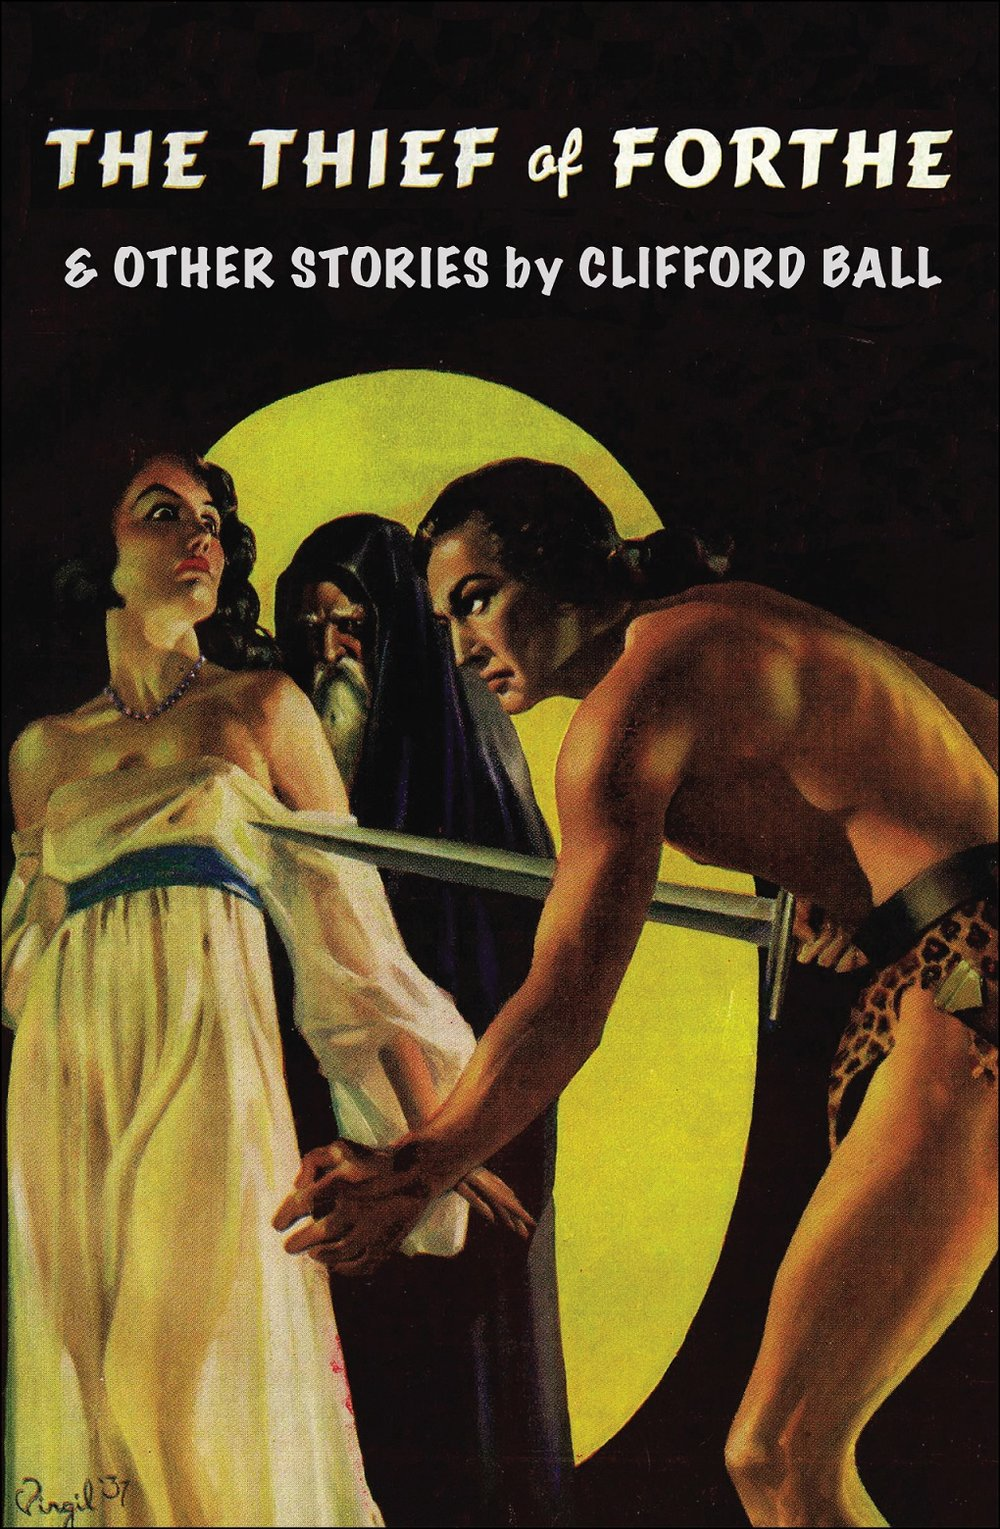 The Thief of Forthe and Other Stories by Clifford Ball - After the death of Robert E. Howard, Clifford Ball was the first writer to follow in his footsteps and pen sword and sorcery stories for Weird Tales. For the first time ever, all of Ball's stories are collected into one volume. A must-have for pulp historians and fans of fantasy, horror, and weird fiction!Contents: Duar the AccursedThe Thief of FortheThe Goddess AwakesThe Swine of AeaeaThe Little ManThe Werewolf HowlsClassic Size: 6.5